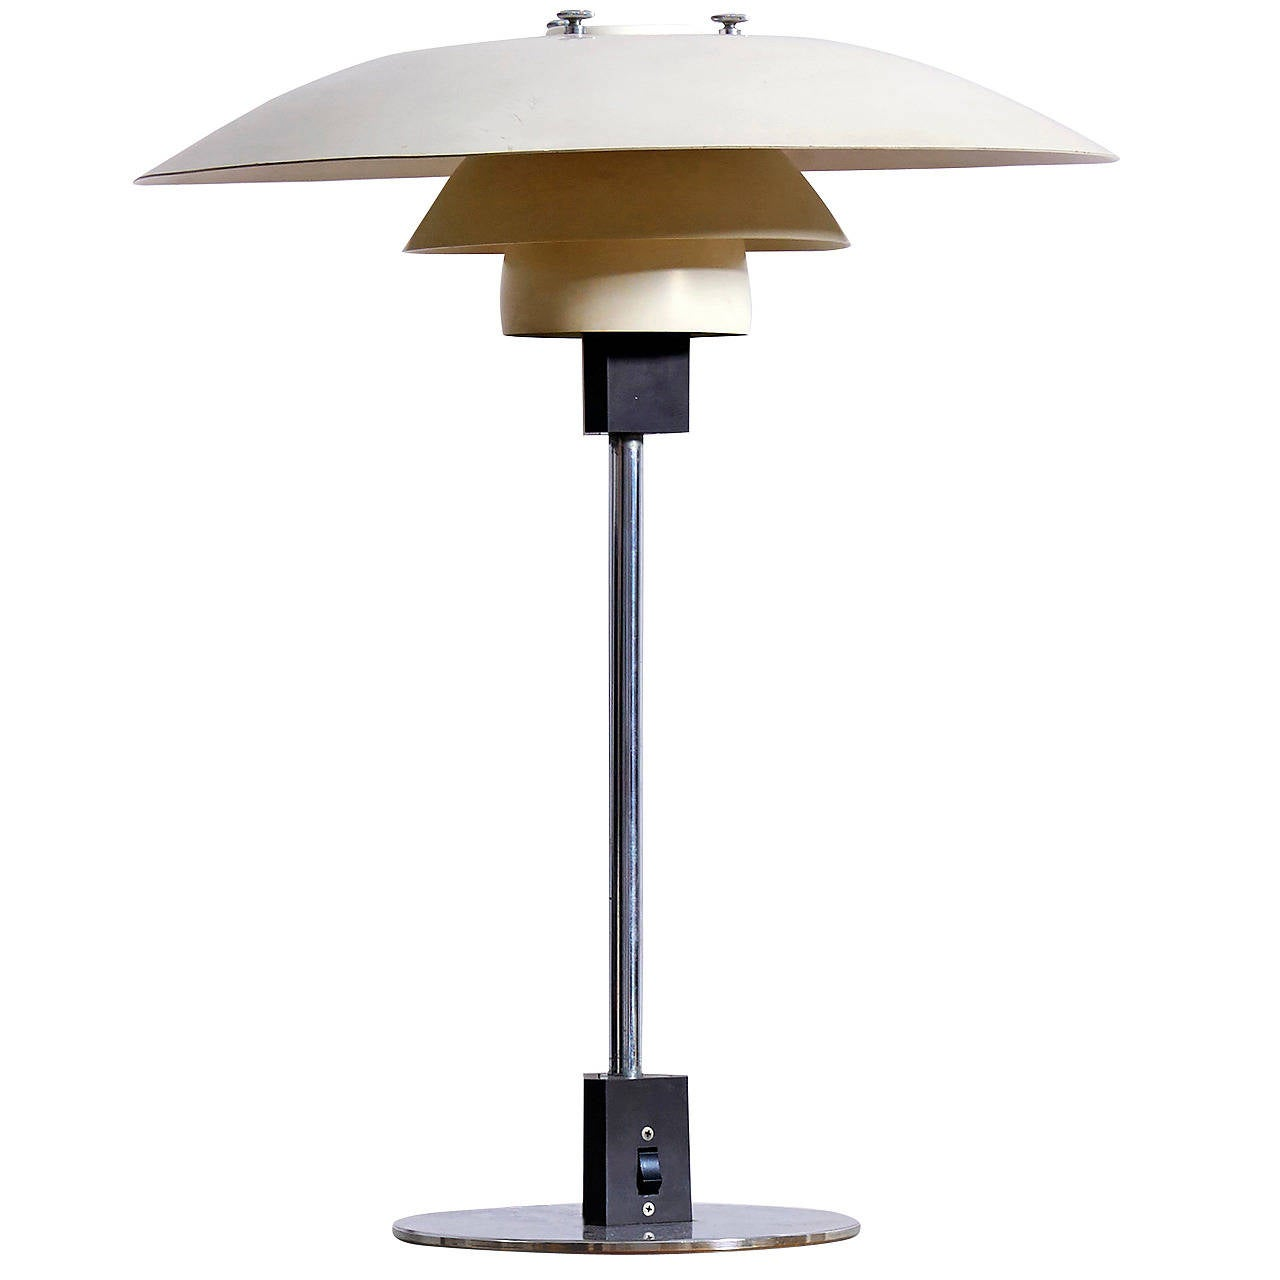 poul henningsen lamp for sale at 1stdibs. Black Bedroom Furniture Sets. Home Design Ideas